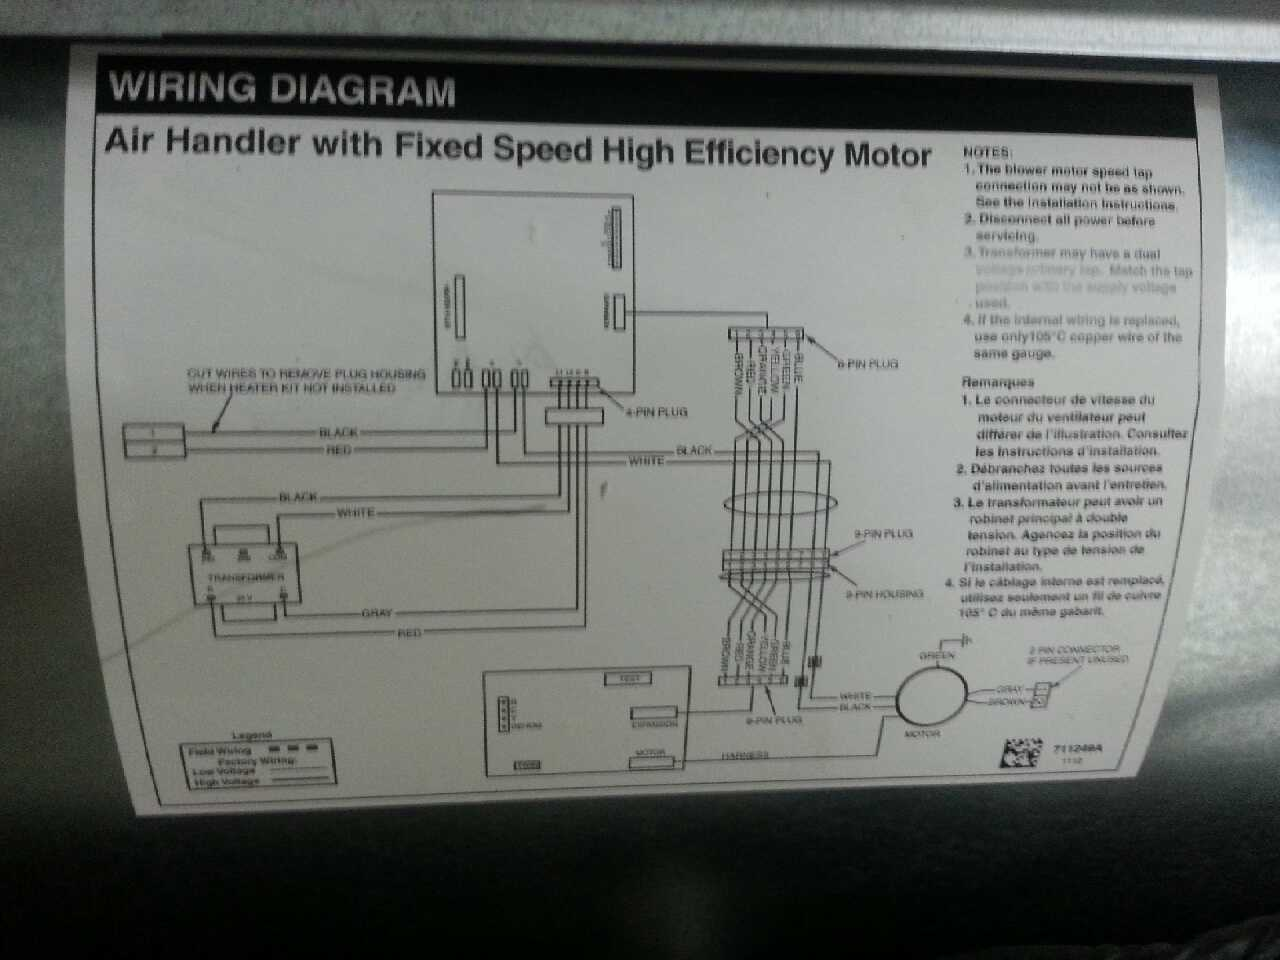 Nordyne Air Handler Wiring Diagrams Great Design Of Diagram Old Furnaces Image 34 Basic Heat Pump Furnace